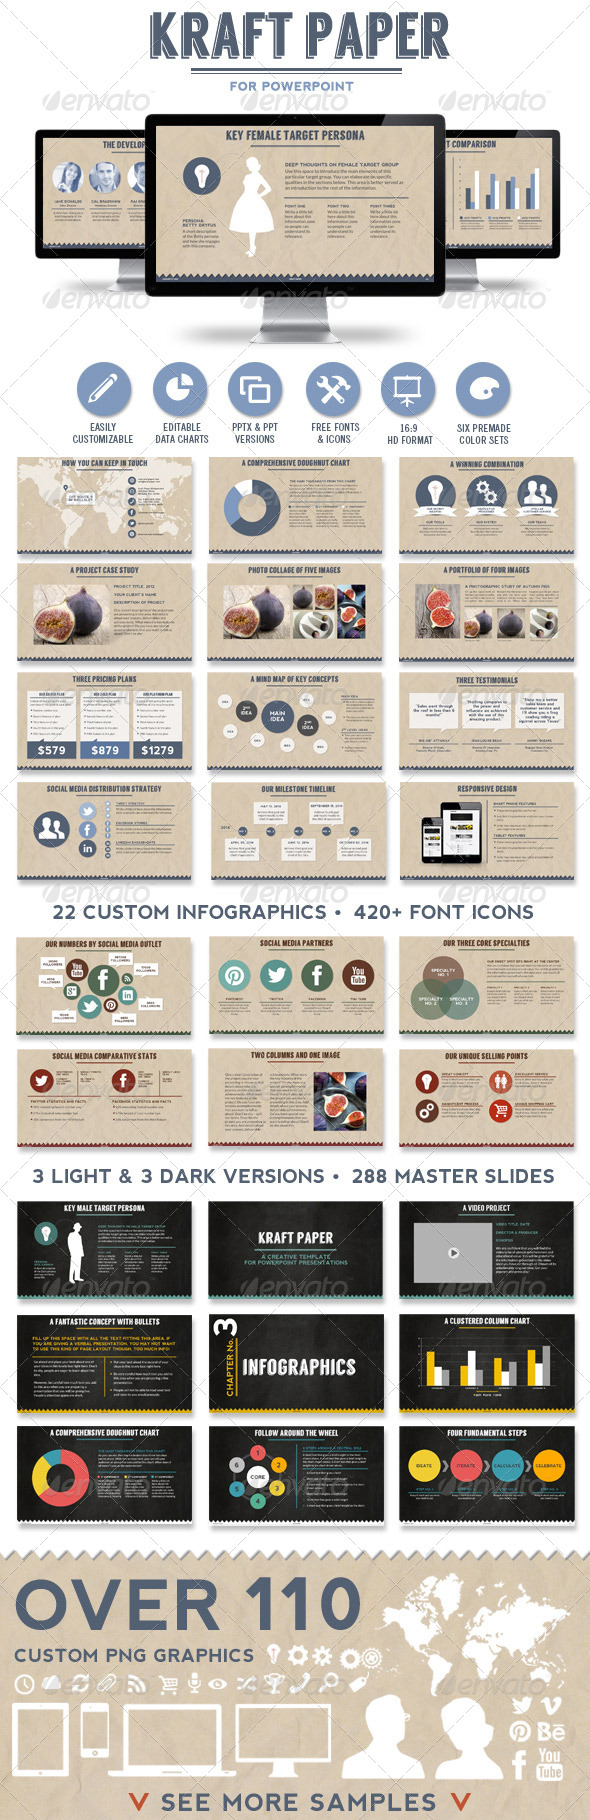 GraphicRiver Kraft Paper Powerpoint Presentation Template 6634372